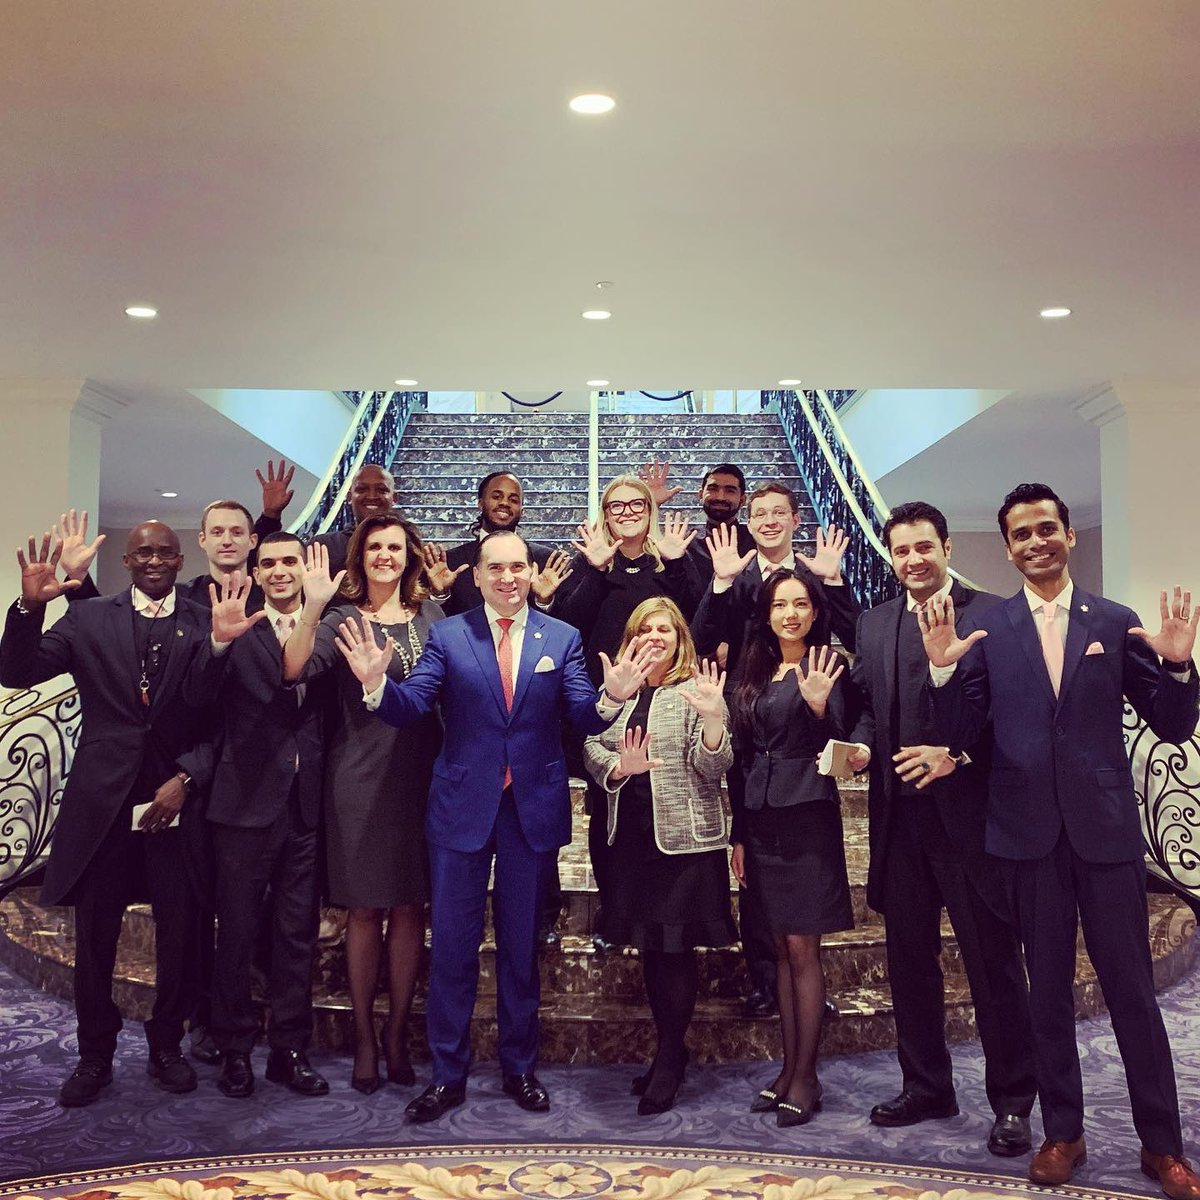 Our @ForbesInspector training continues at @TrumpDC Another great session with the GREAT Gina Taylor!!! #training #trump #bestteam #5star #luxuryhotel #luxury #success #neversettle #doitbetterthananyoneelse